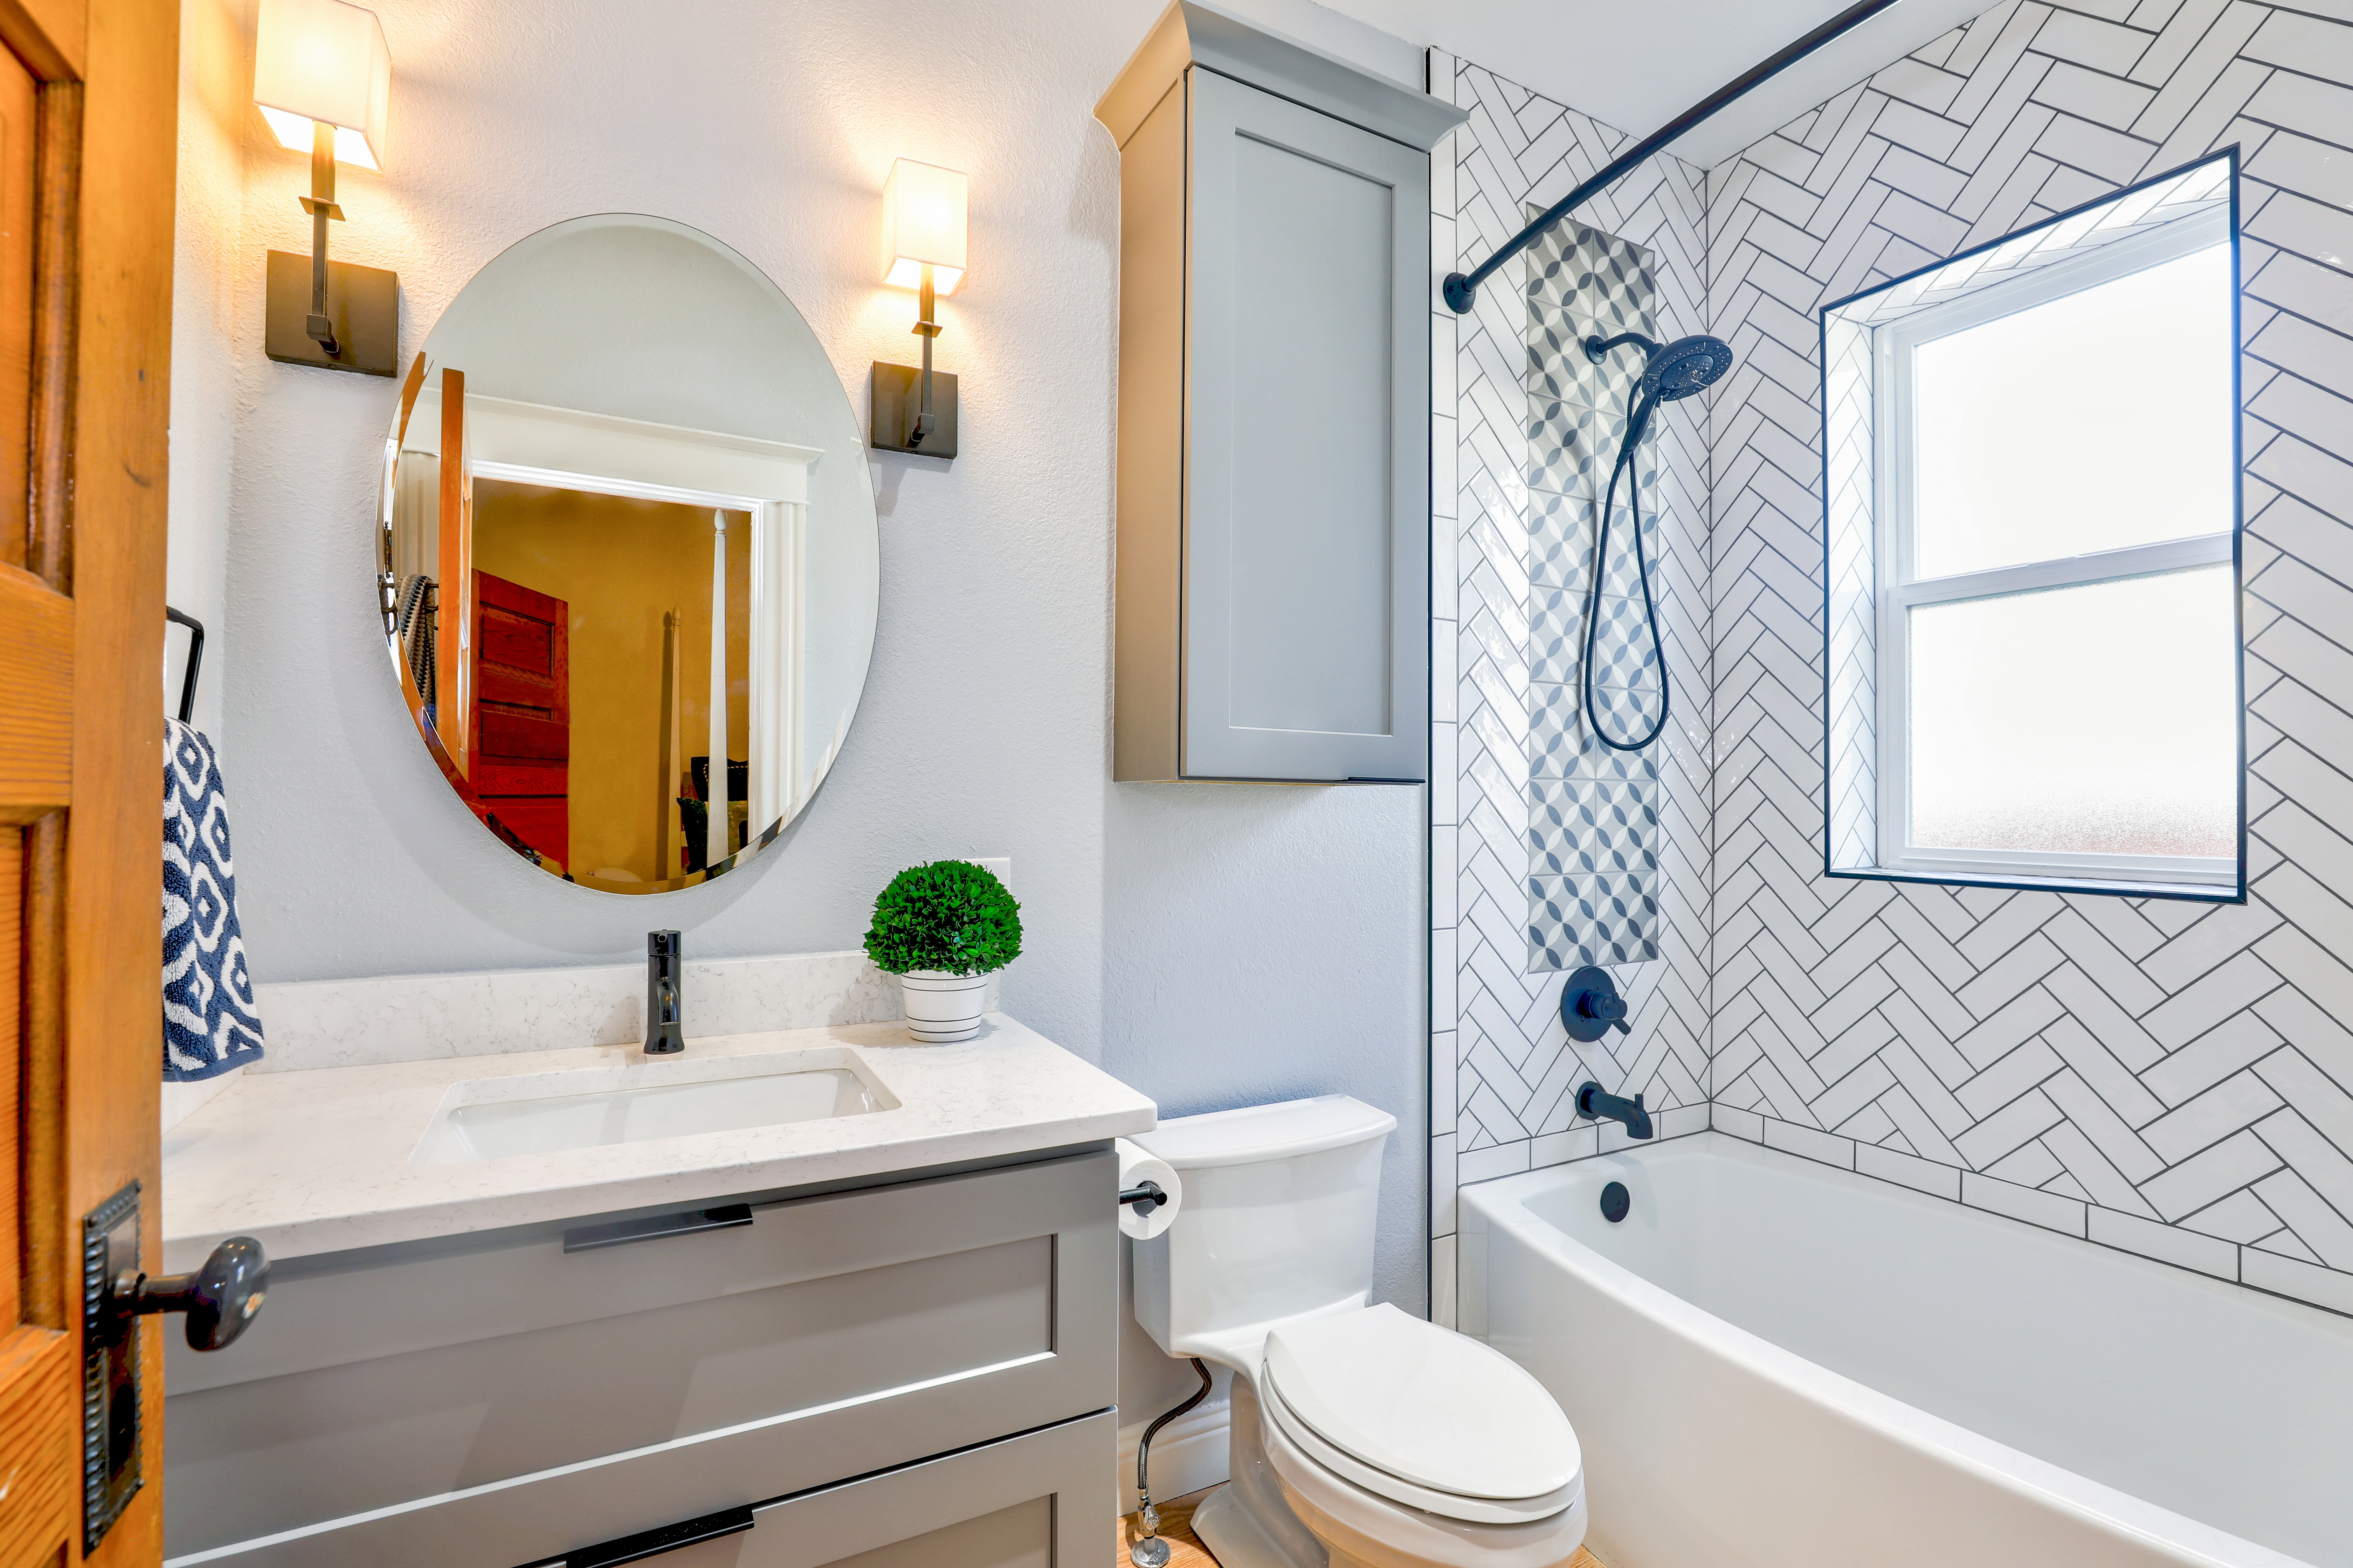 Updated interior bathroom with oval mirror and vanity with beautifully replaced shower tiles.